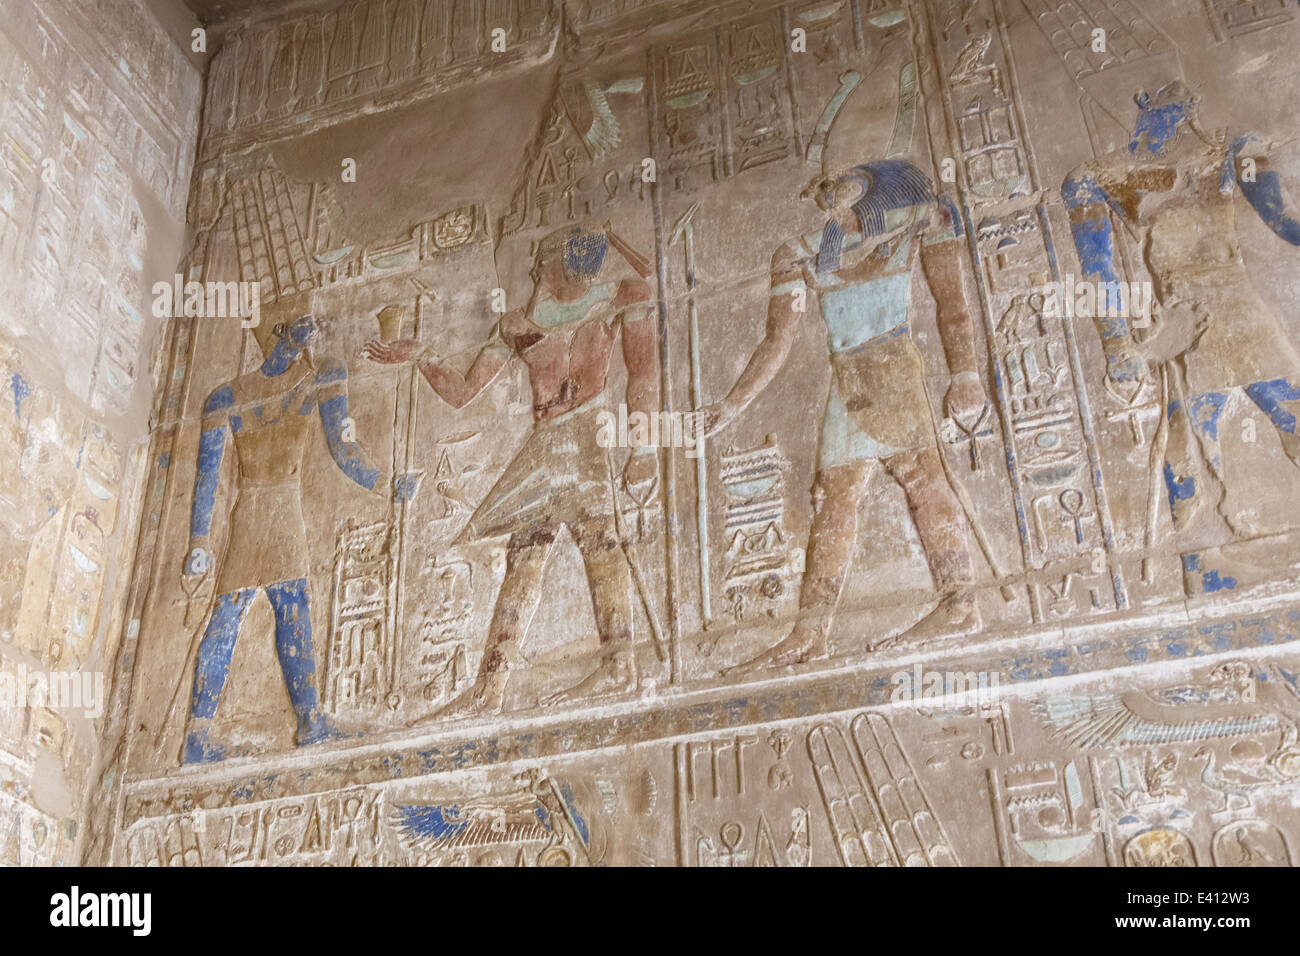 Egypt, Luxor, wall with hieroglyphs at Karnak temple - Stock Image